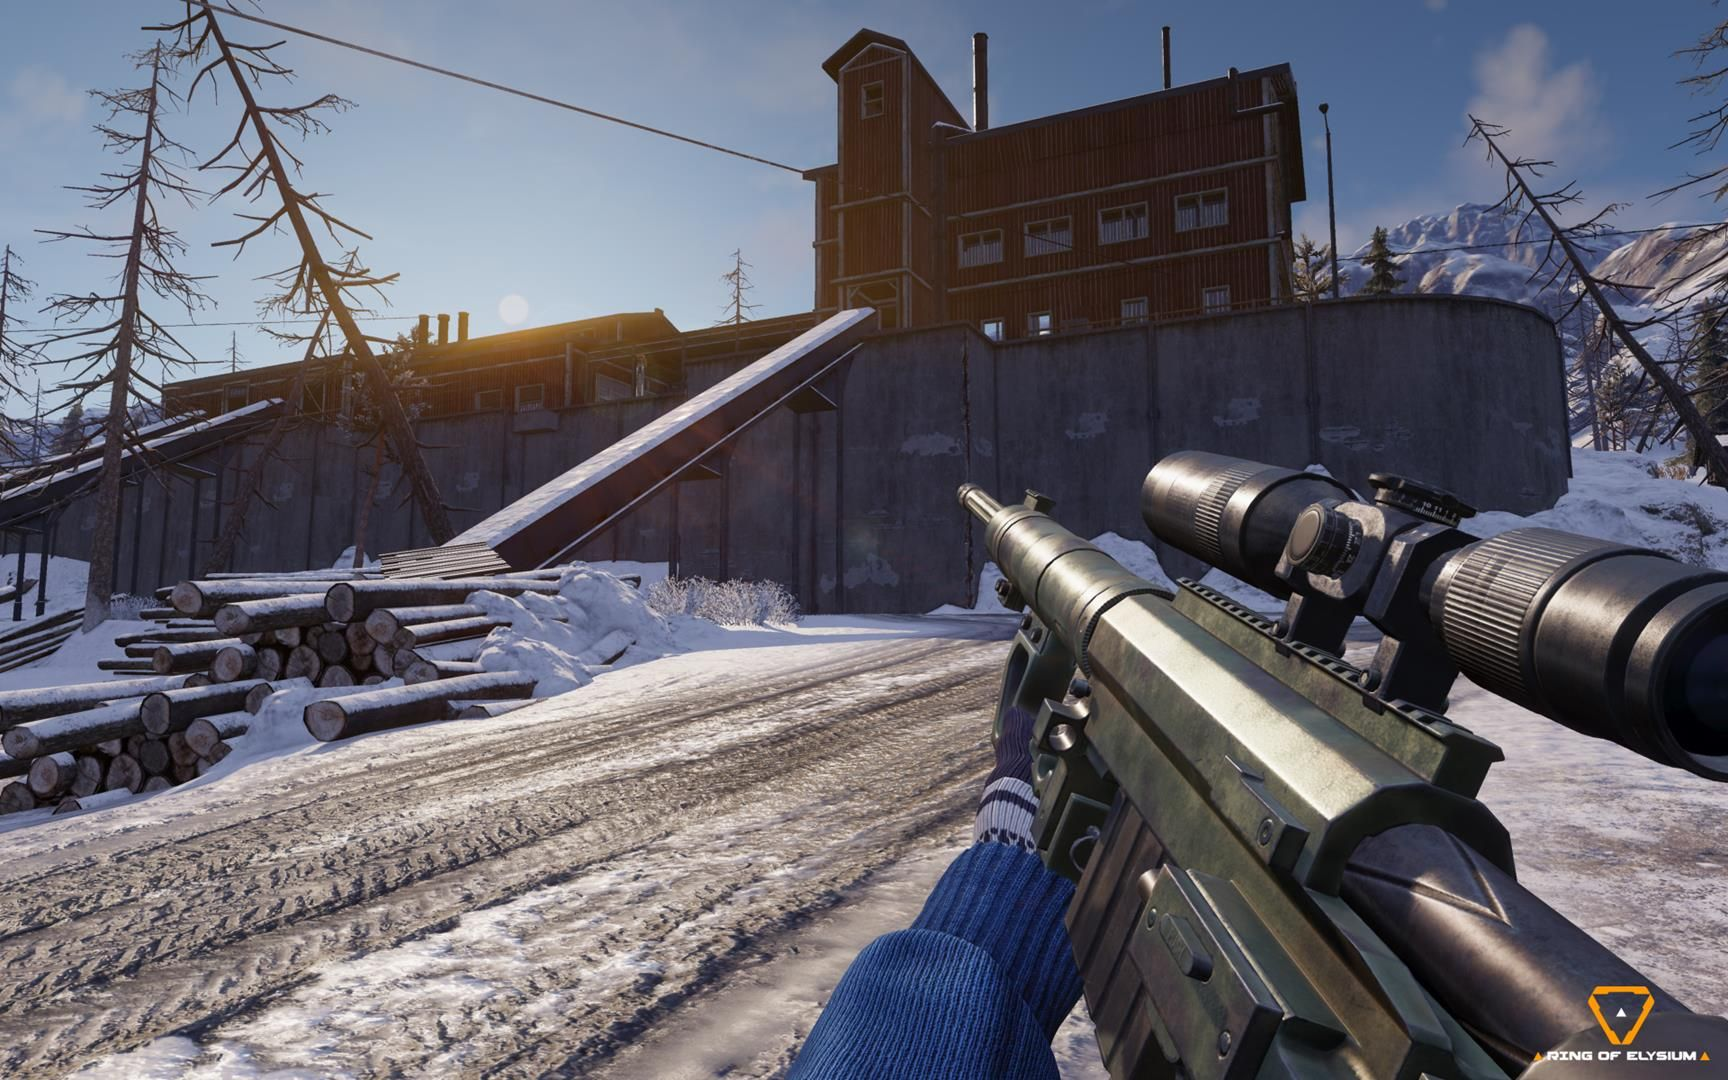 Ring Of Elysium The Battle Royale Shooter Where You Can Snowboard And Paraglide Is Coming To Steam Next Week Jeux Video Jeux Battle Royale